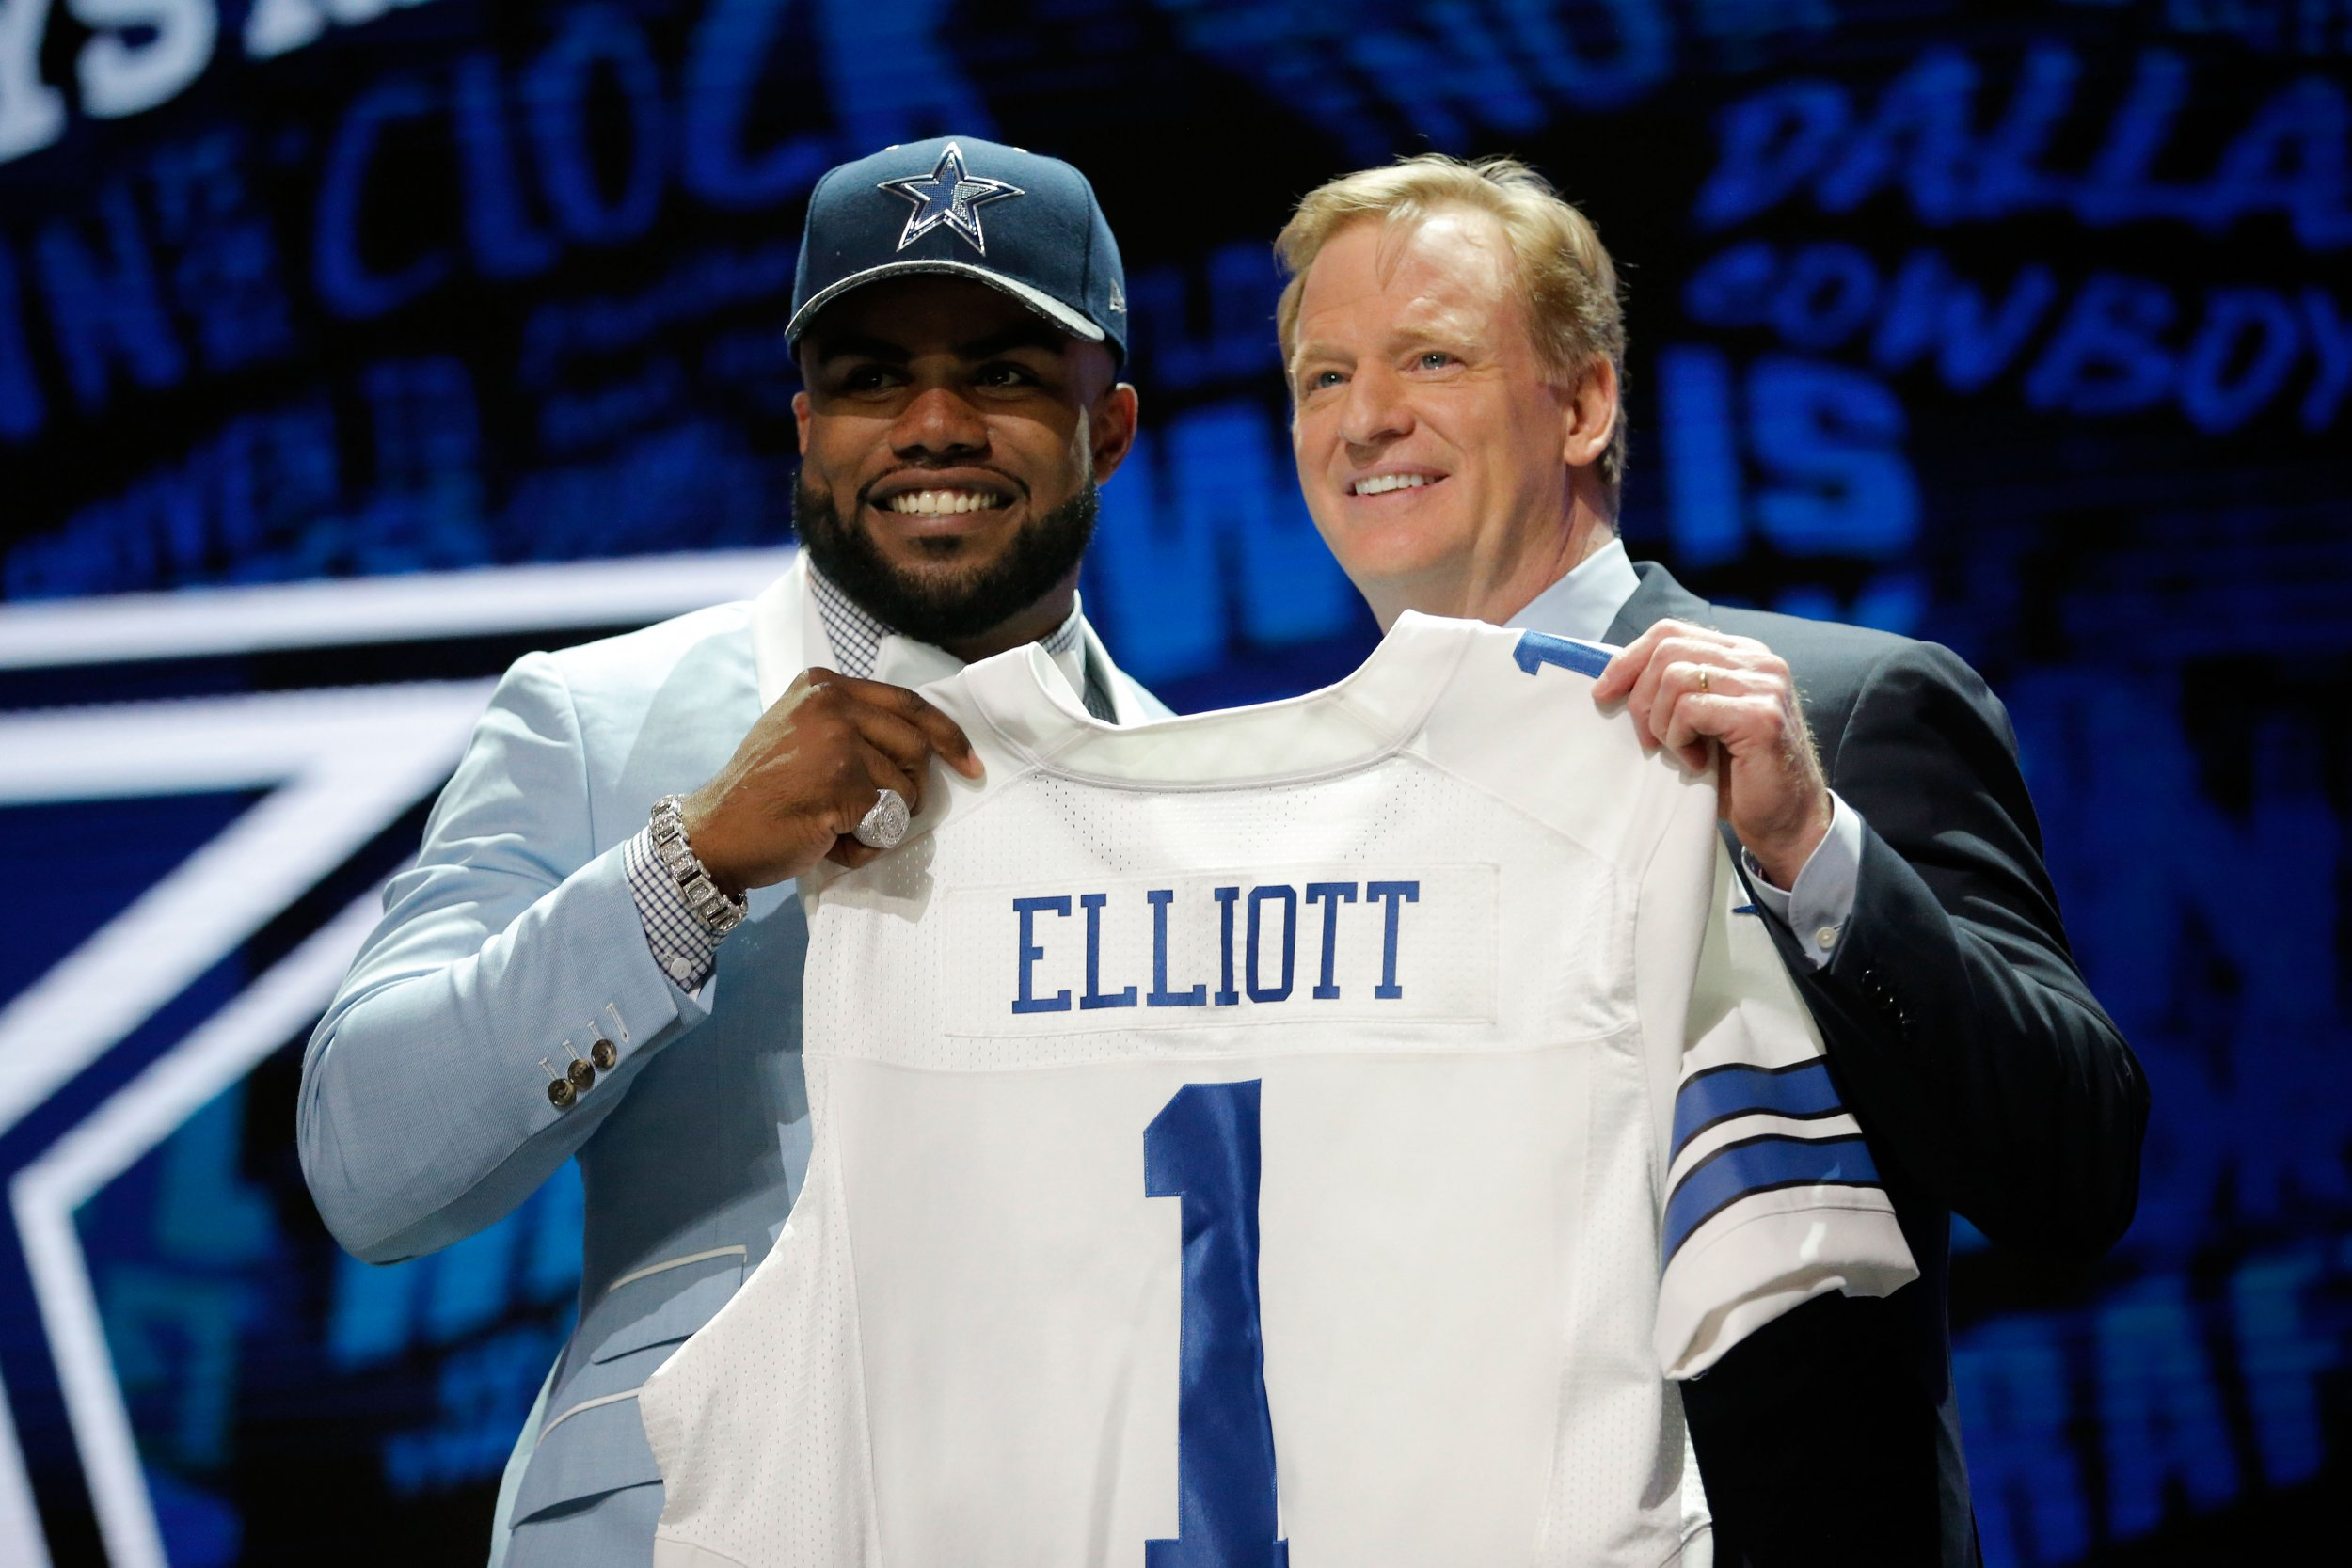 Dallas Cowboys running back Ezekiel Elliott, left, with NFL Commissioner Roger Goodell.